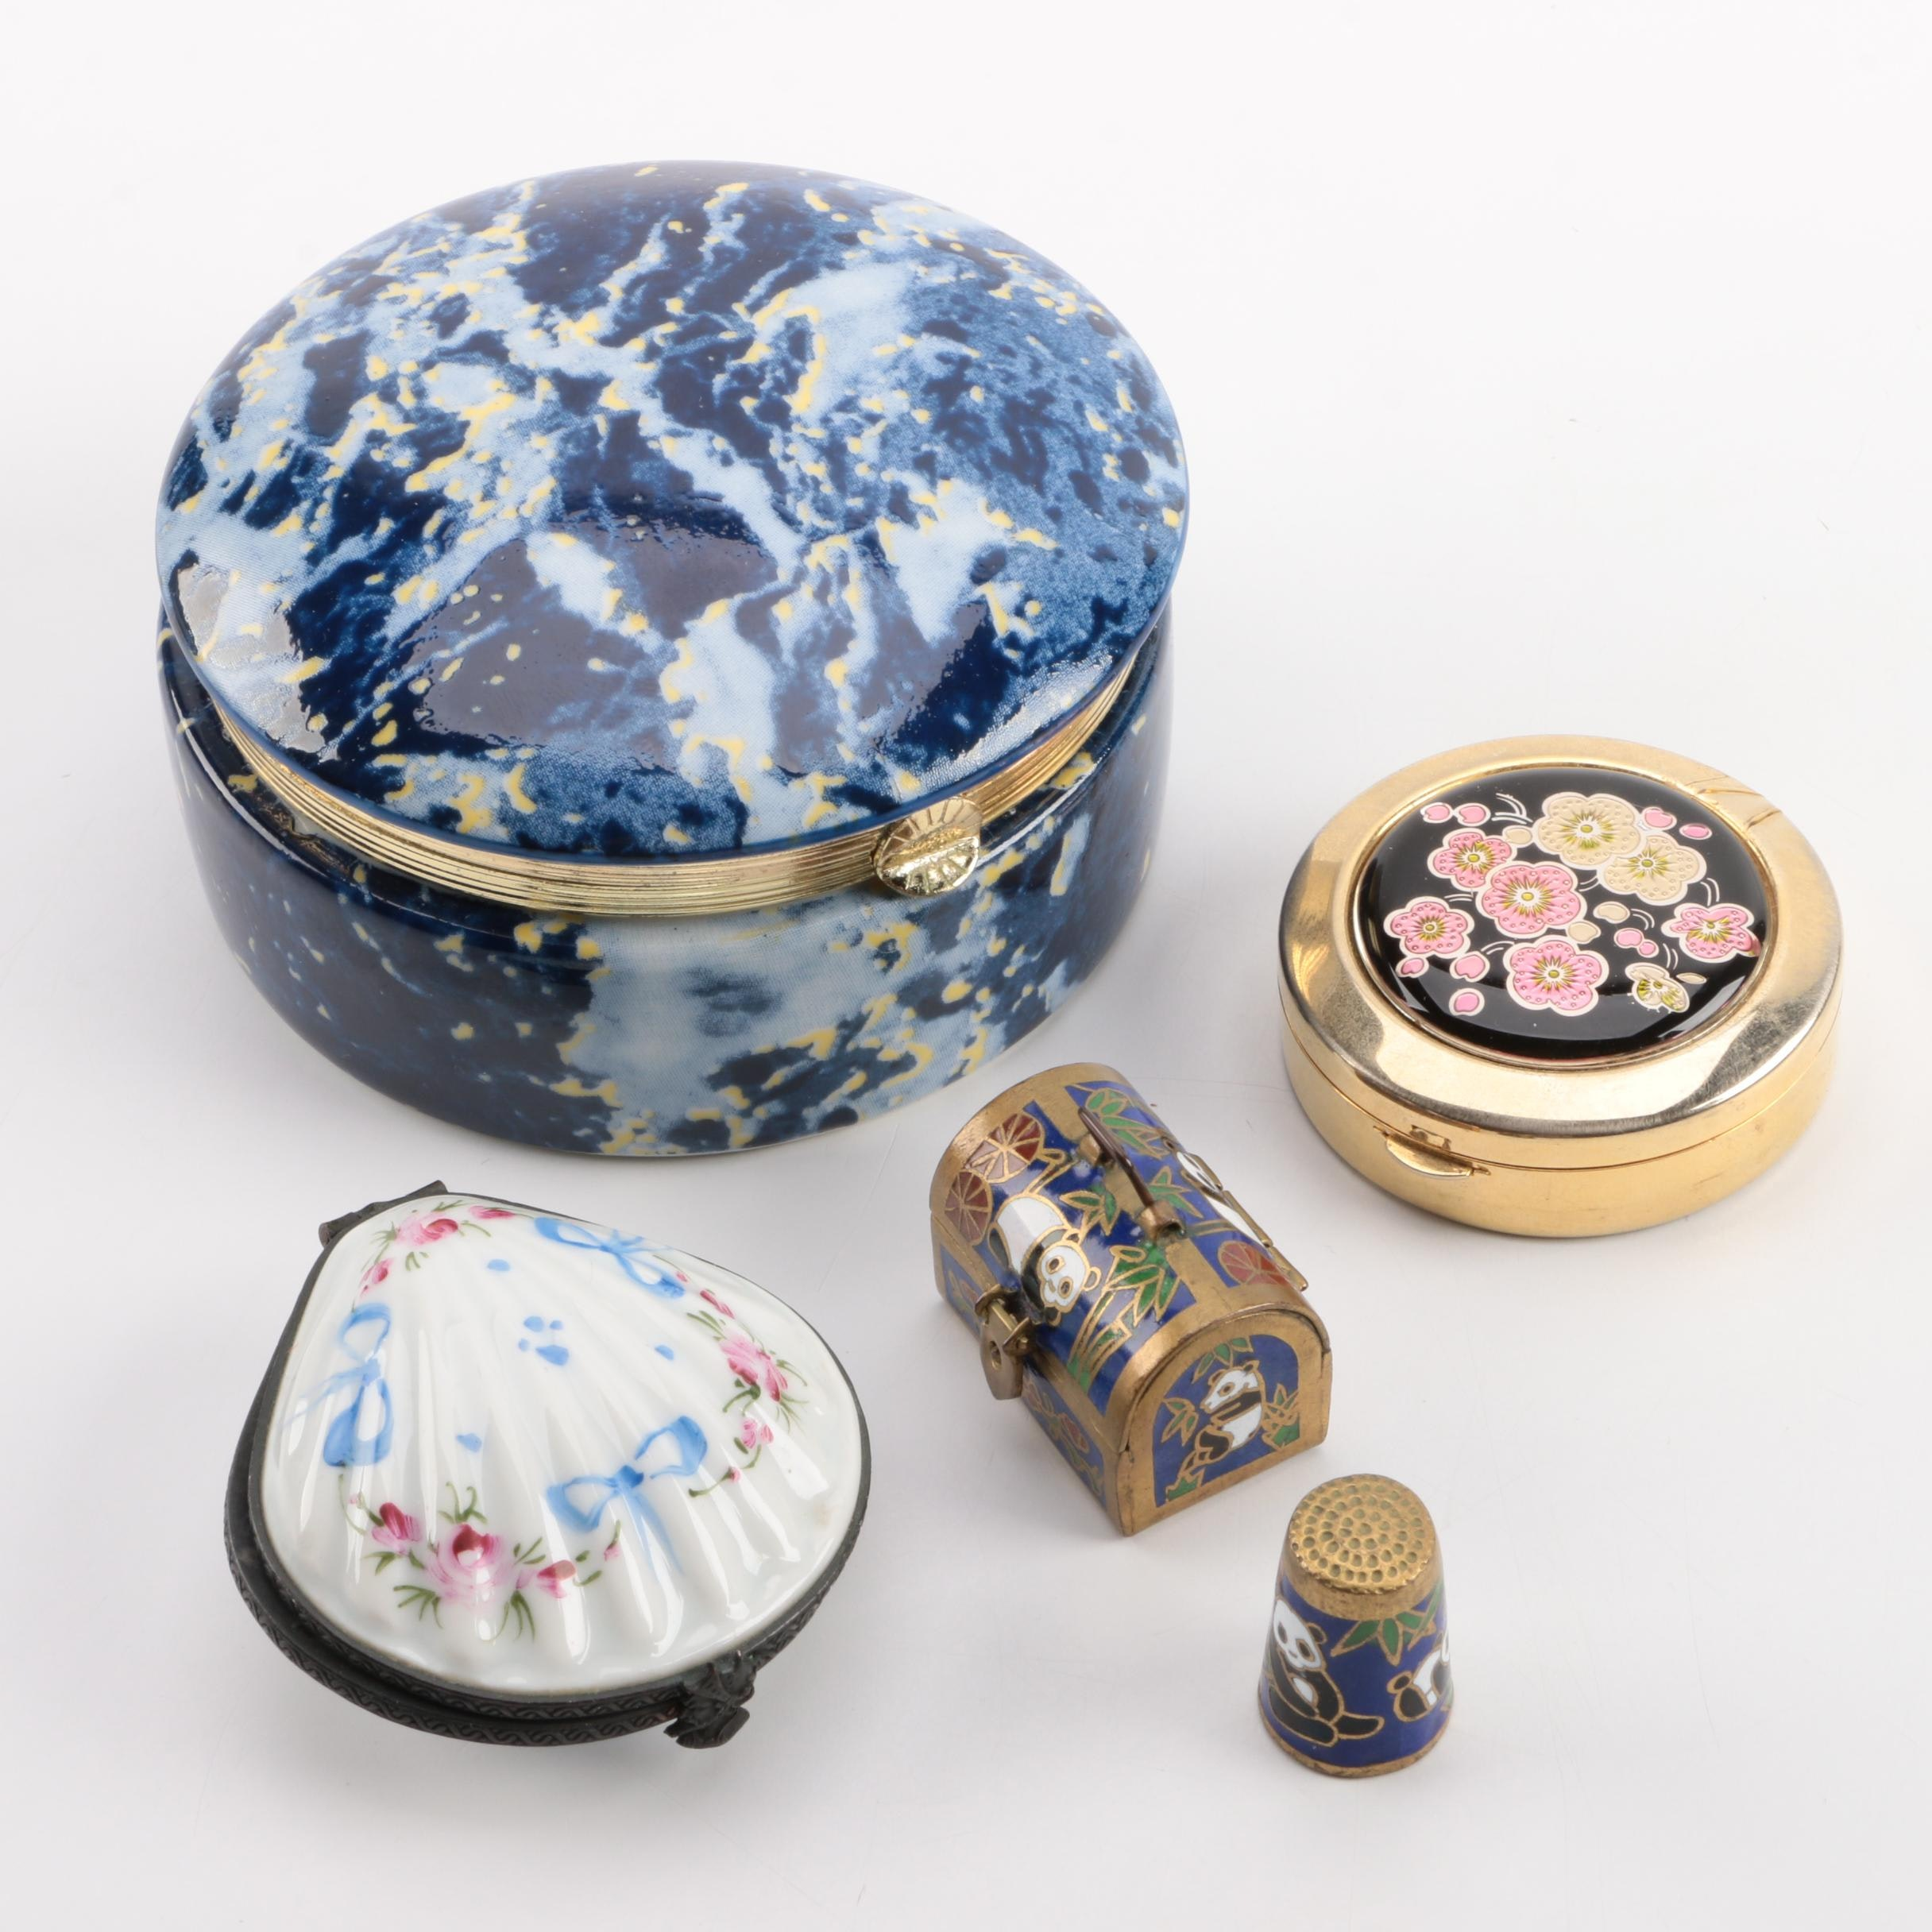 Assortment of Trinket Boxes and one Thimble